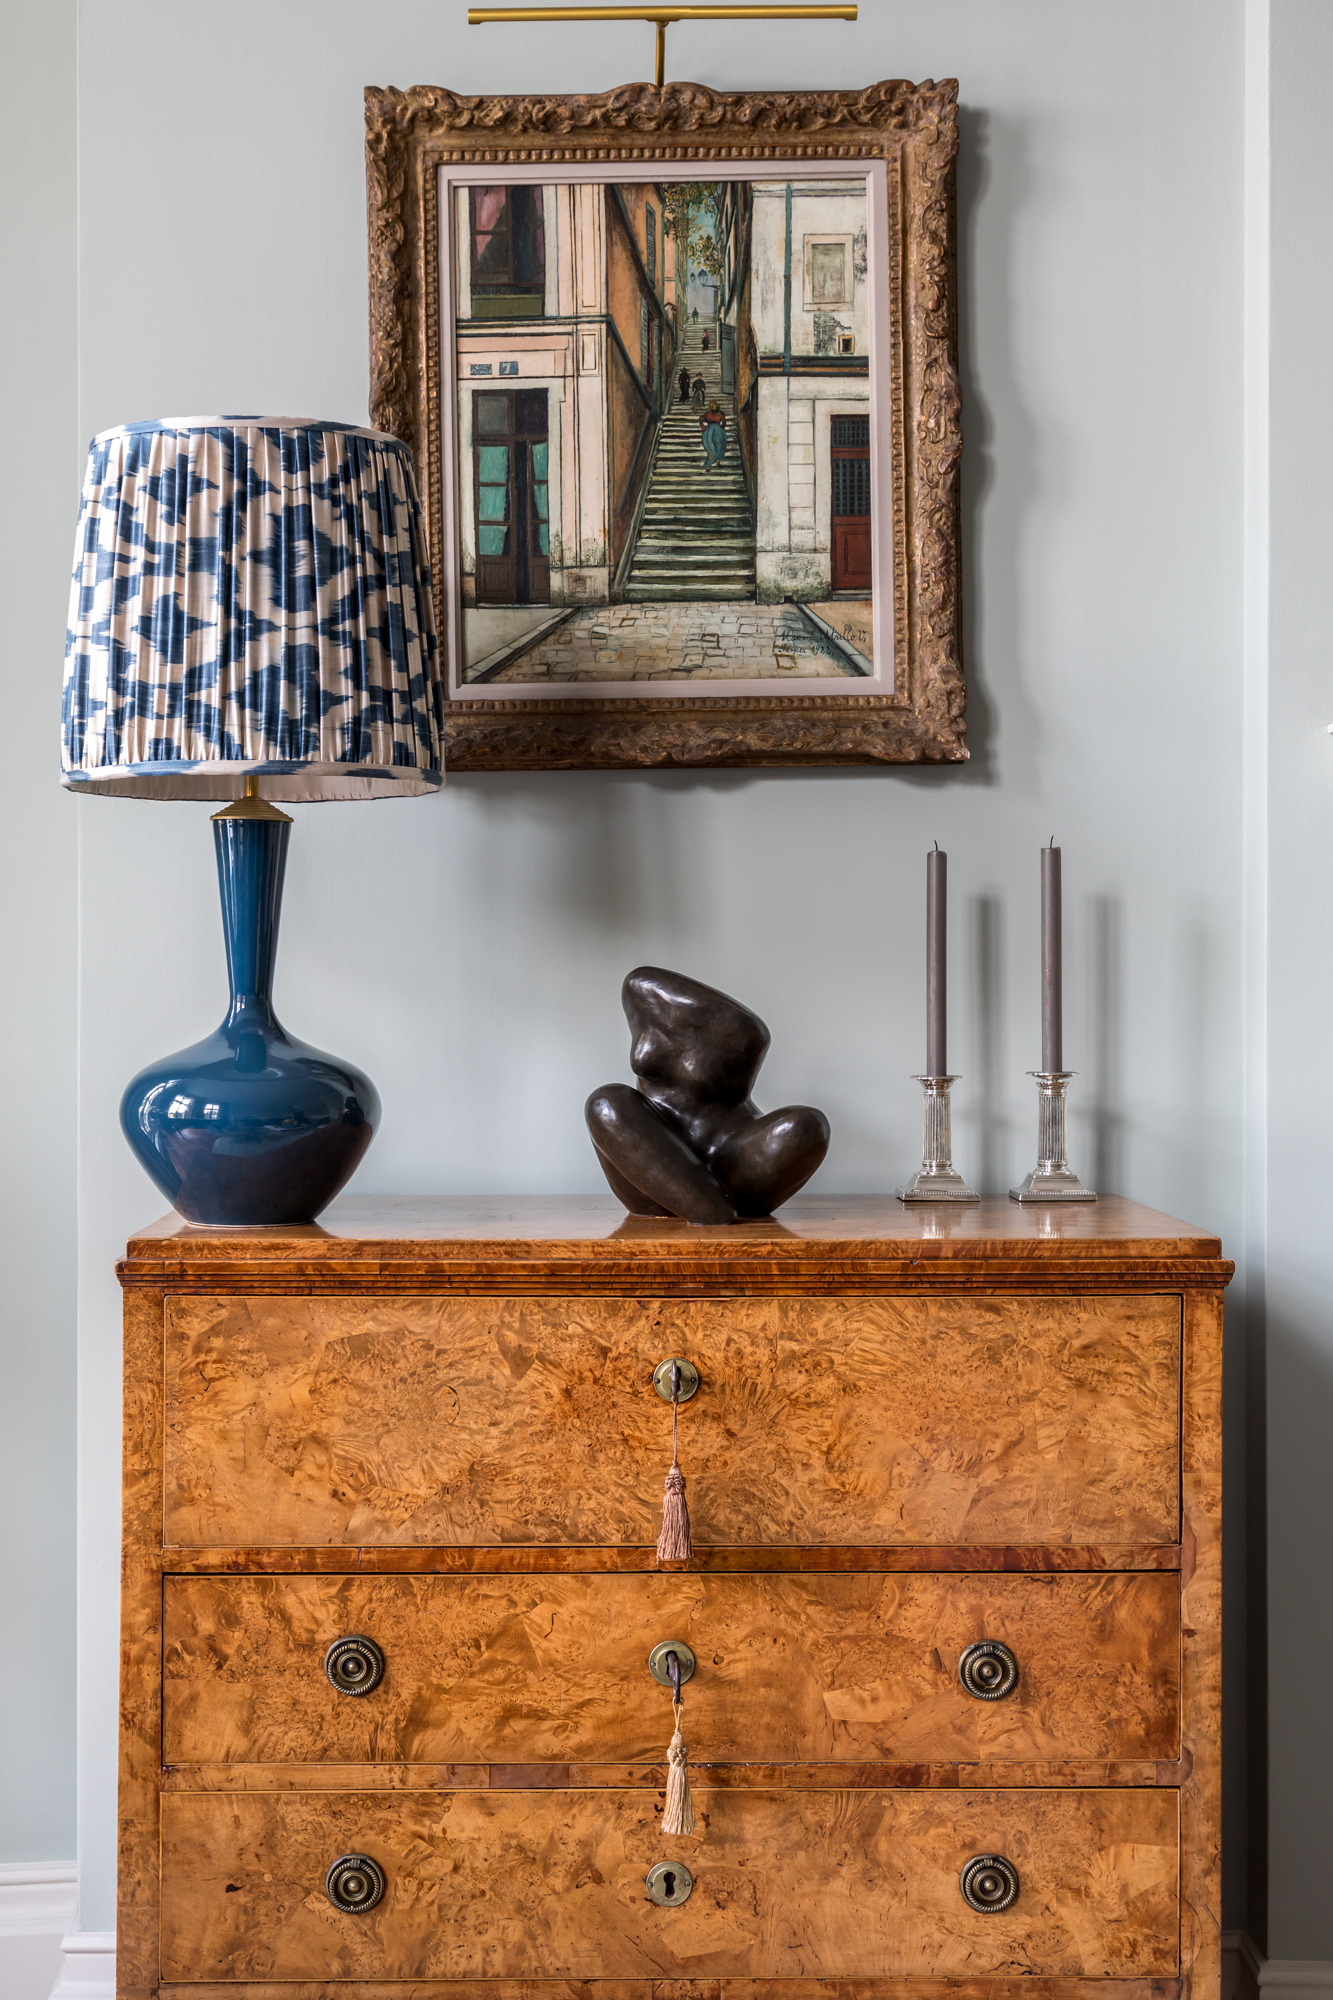 jonathan bond, interior photographer, chest of drawers, holland park, london